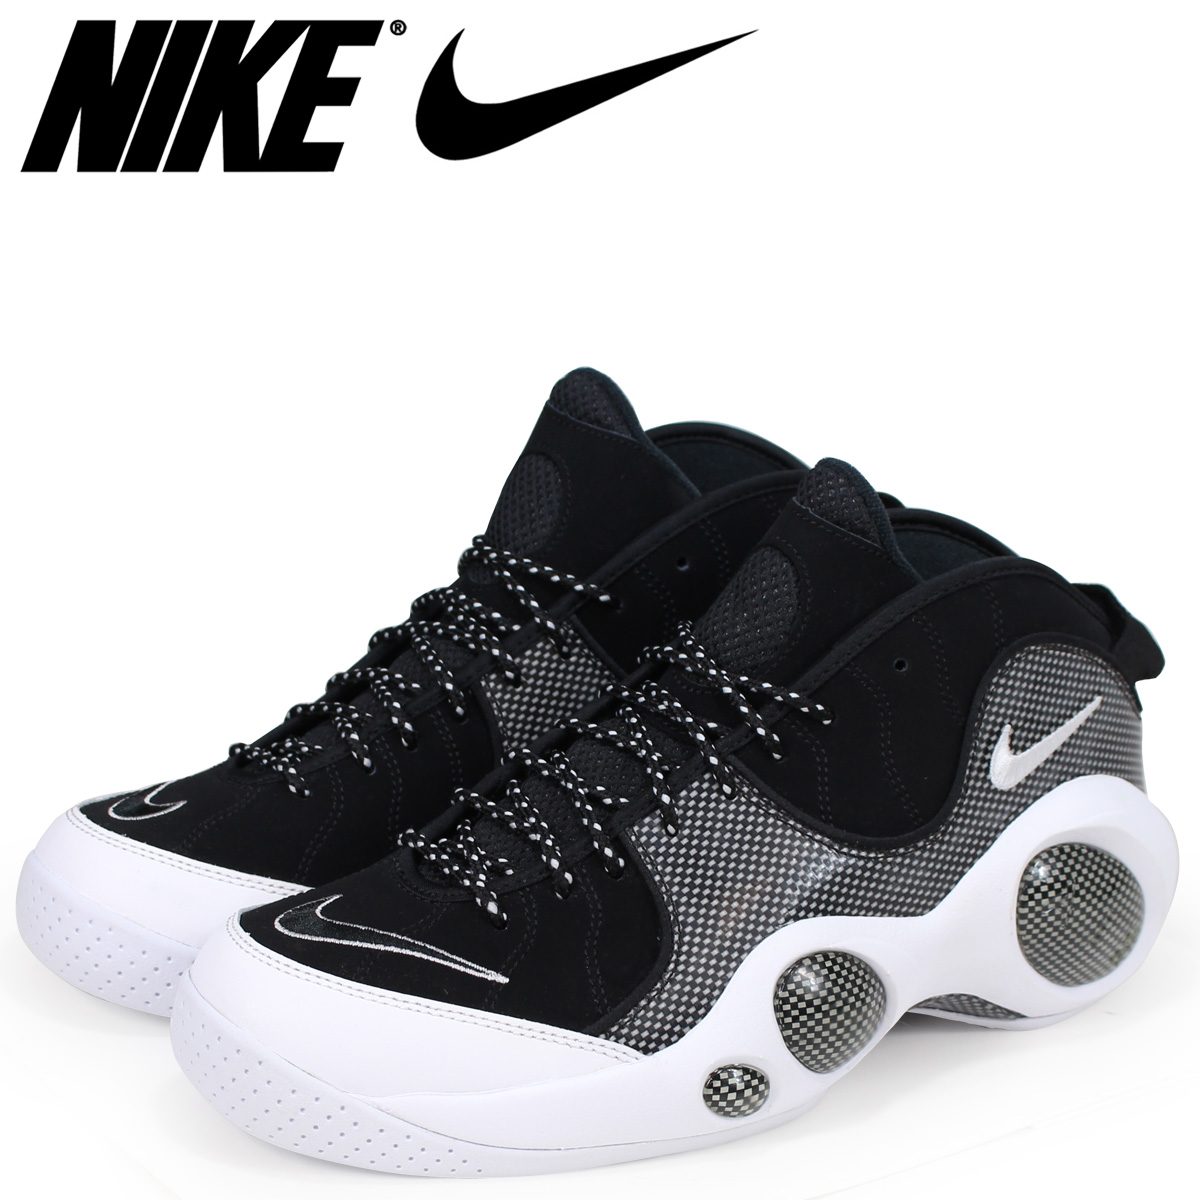 watch 6db0b d2daa NIKE Nike air zoom flight 95 sneakers men AIR ZOOM FLIGHT 95 SE 806,404-001  black  6 29 Shinnyu load